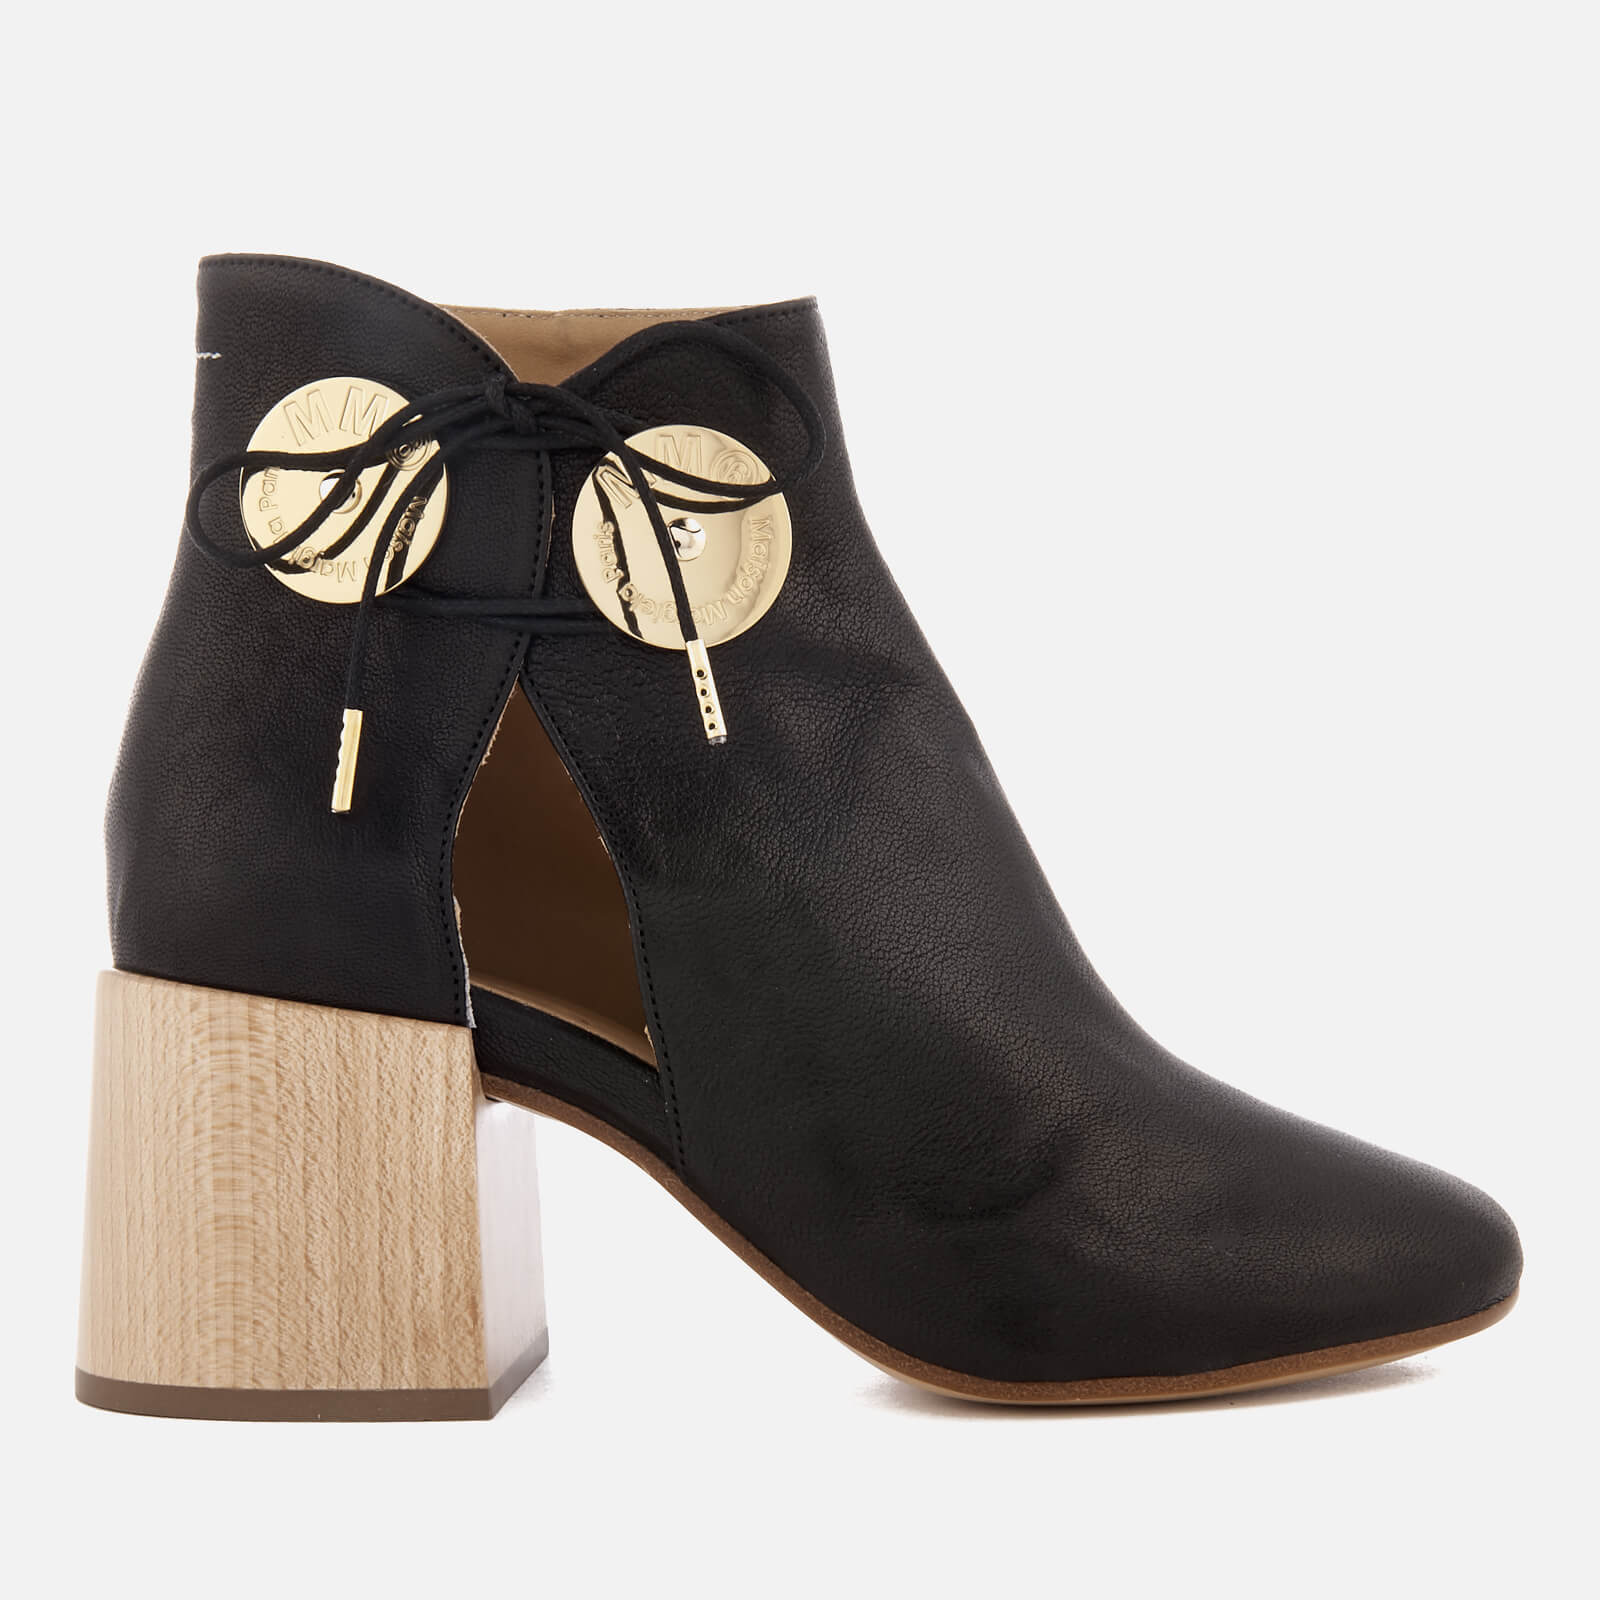 74da0cf271 MM6 Maison Margiela Women's Ankle Boot with Cut Out Side and Wooden Block  Heels - Black - Free UK Delivery over £50